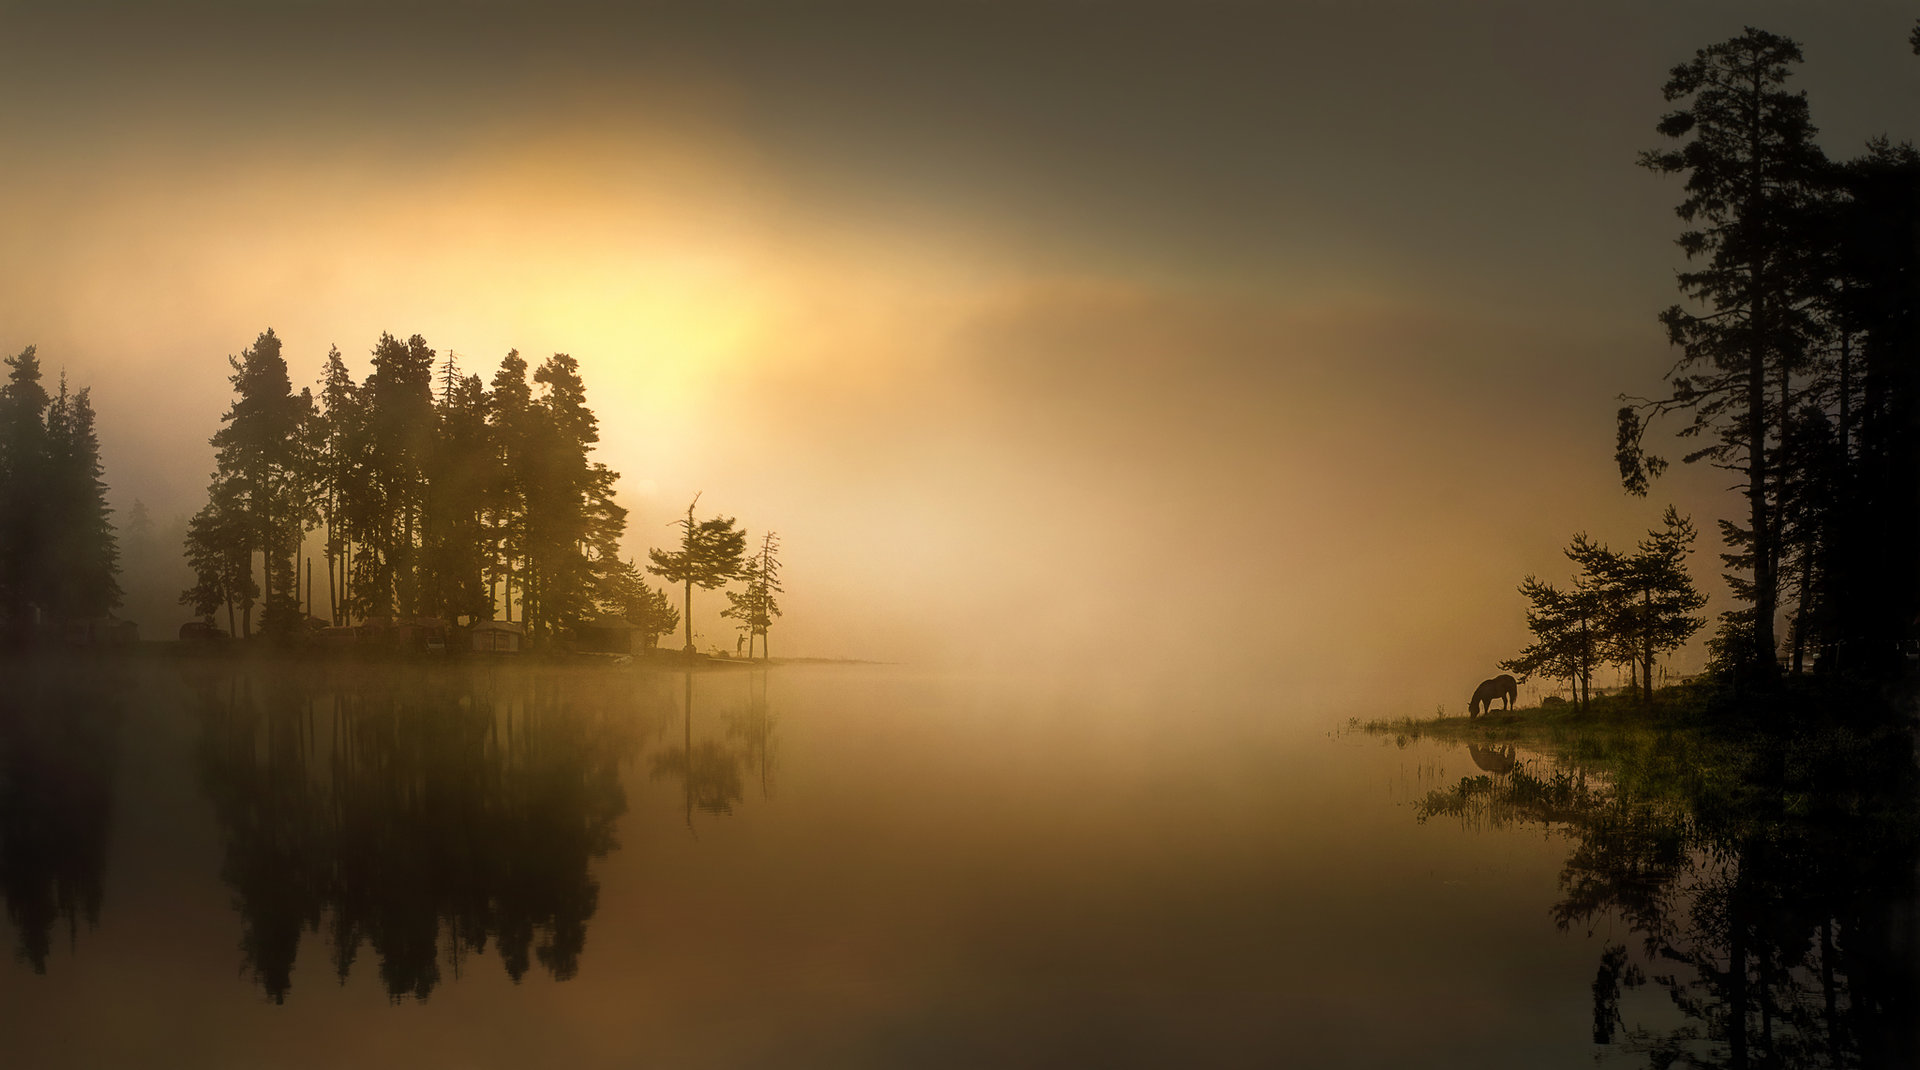 Photo in Landscape | Author Todor Tanev - Todor_Tanev | PHOTO FORUM